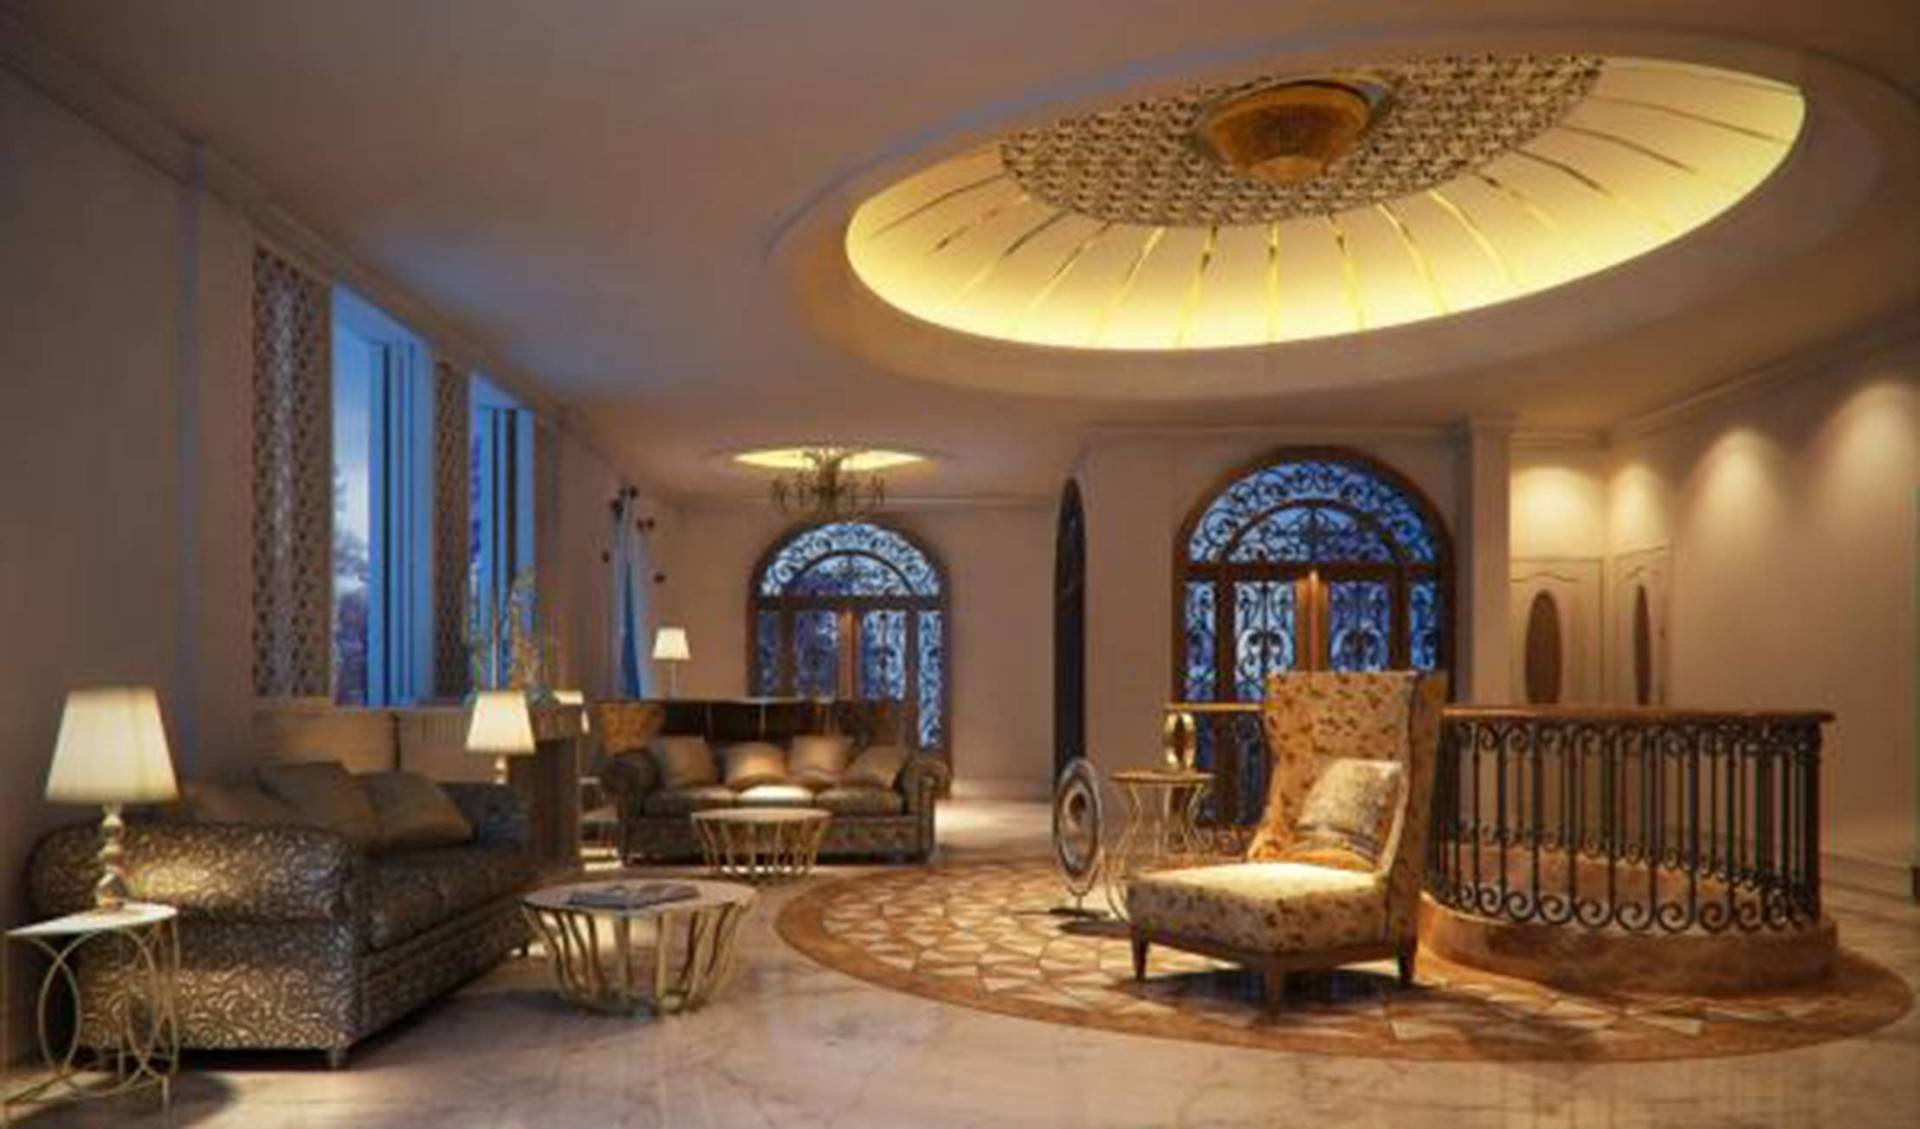 Mul I.d Design Consultant Boutique Hotel At Kassab Syria Syria Reception-Lobby Modern  3909